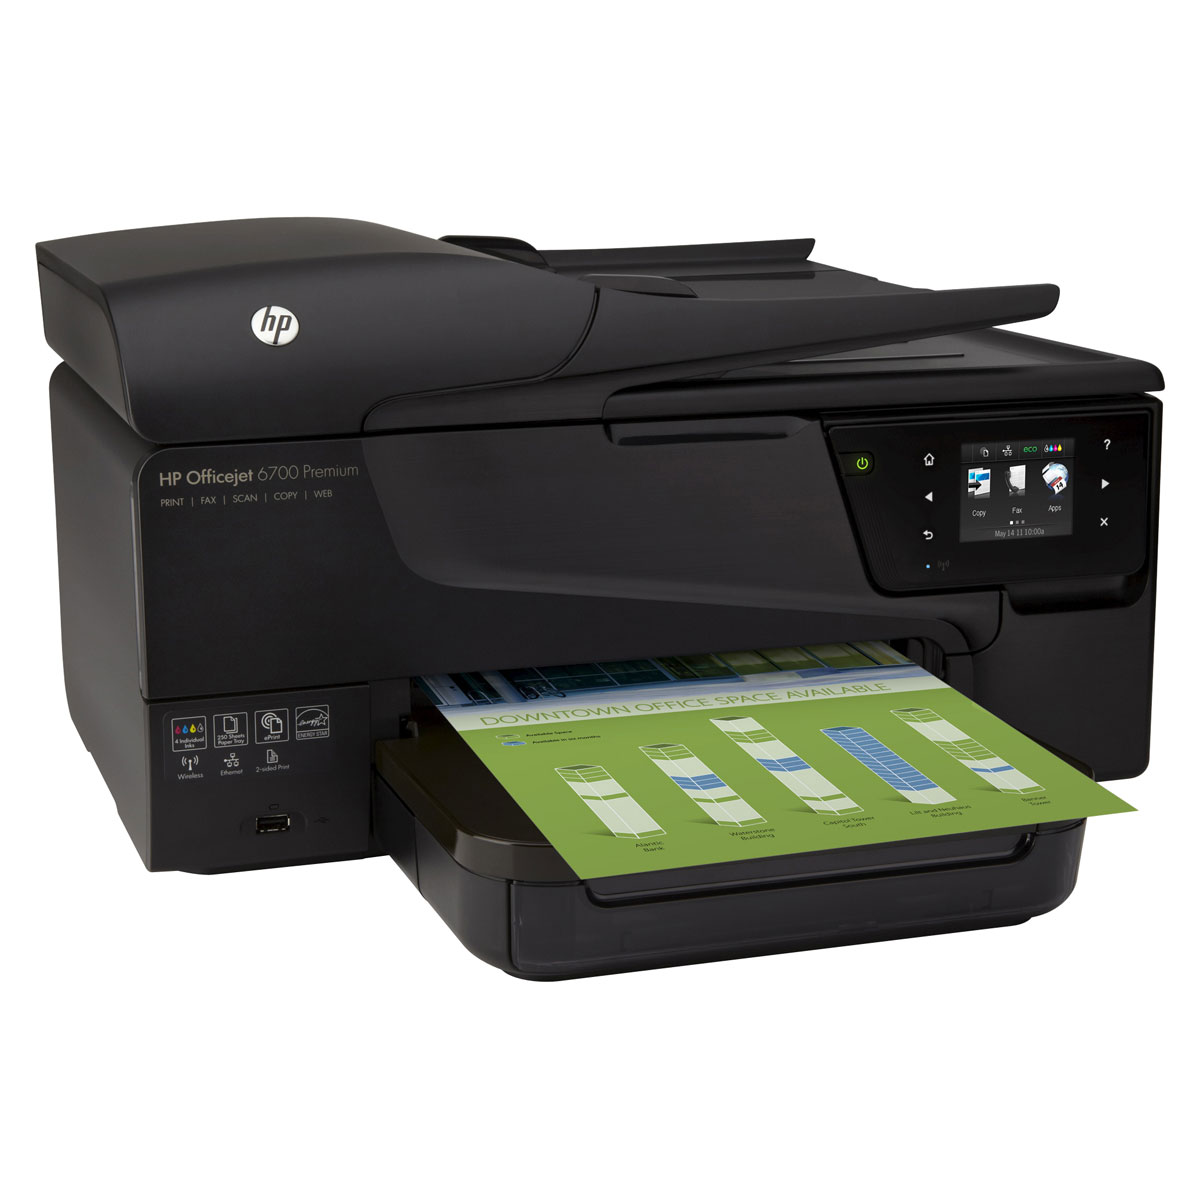 hp officejet 6700 premium imprimante multifonction hp sur. Black Bedroom Furniture Sets. Home Design Ideas